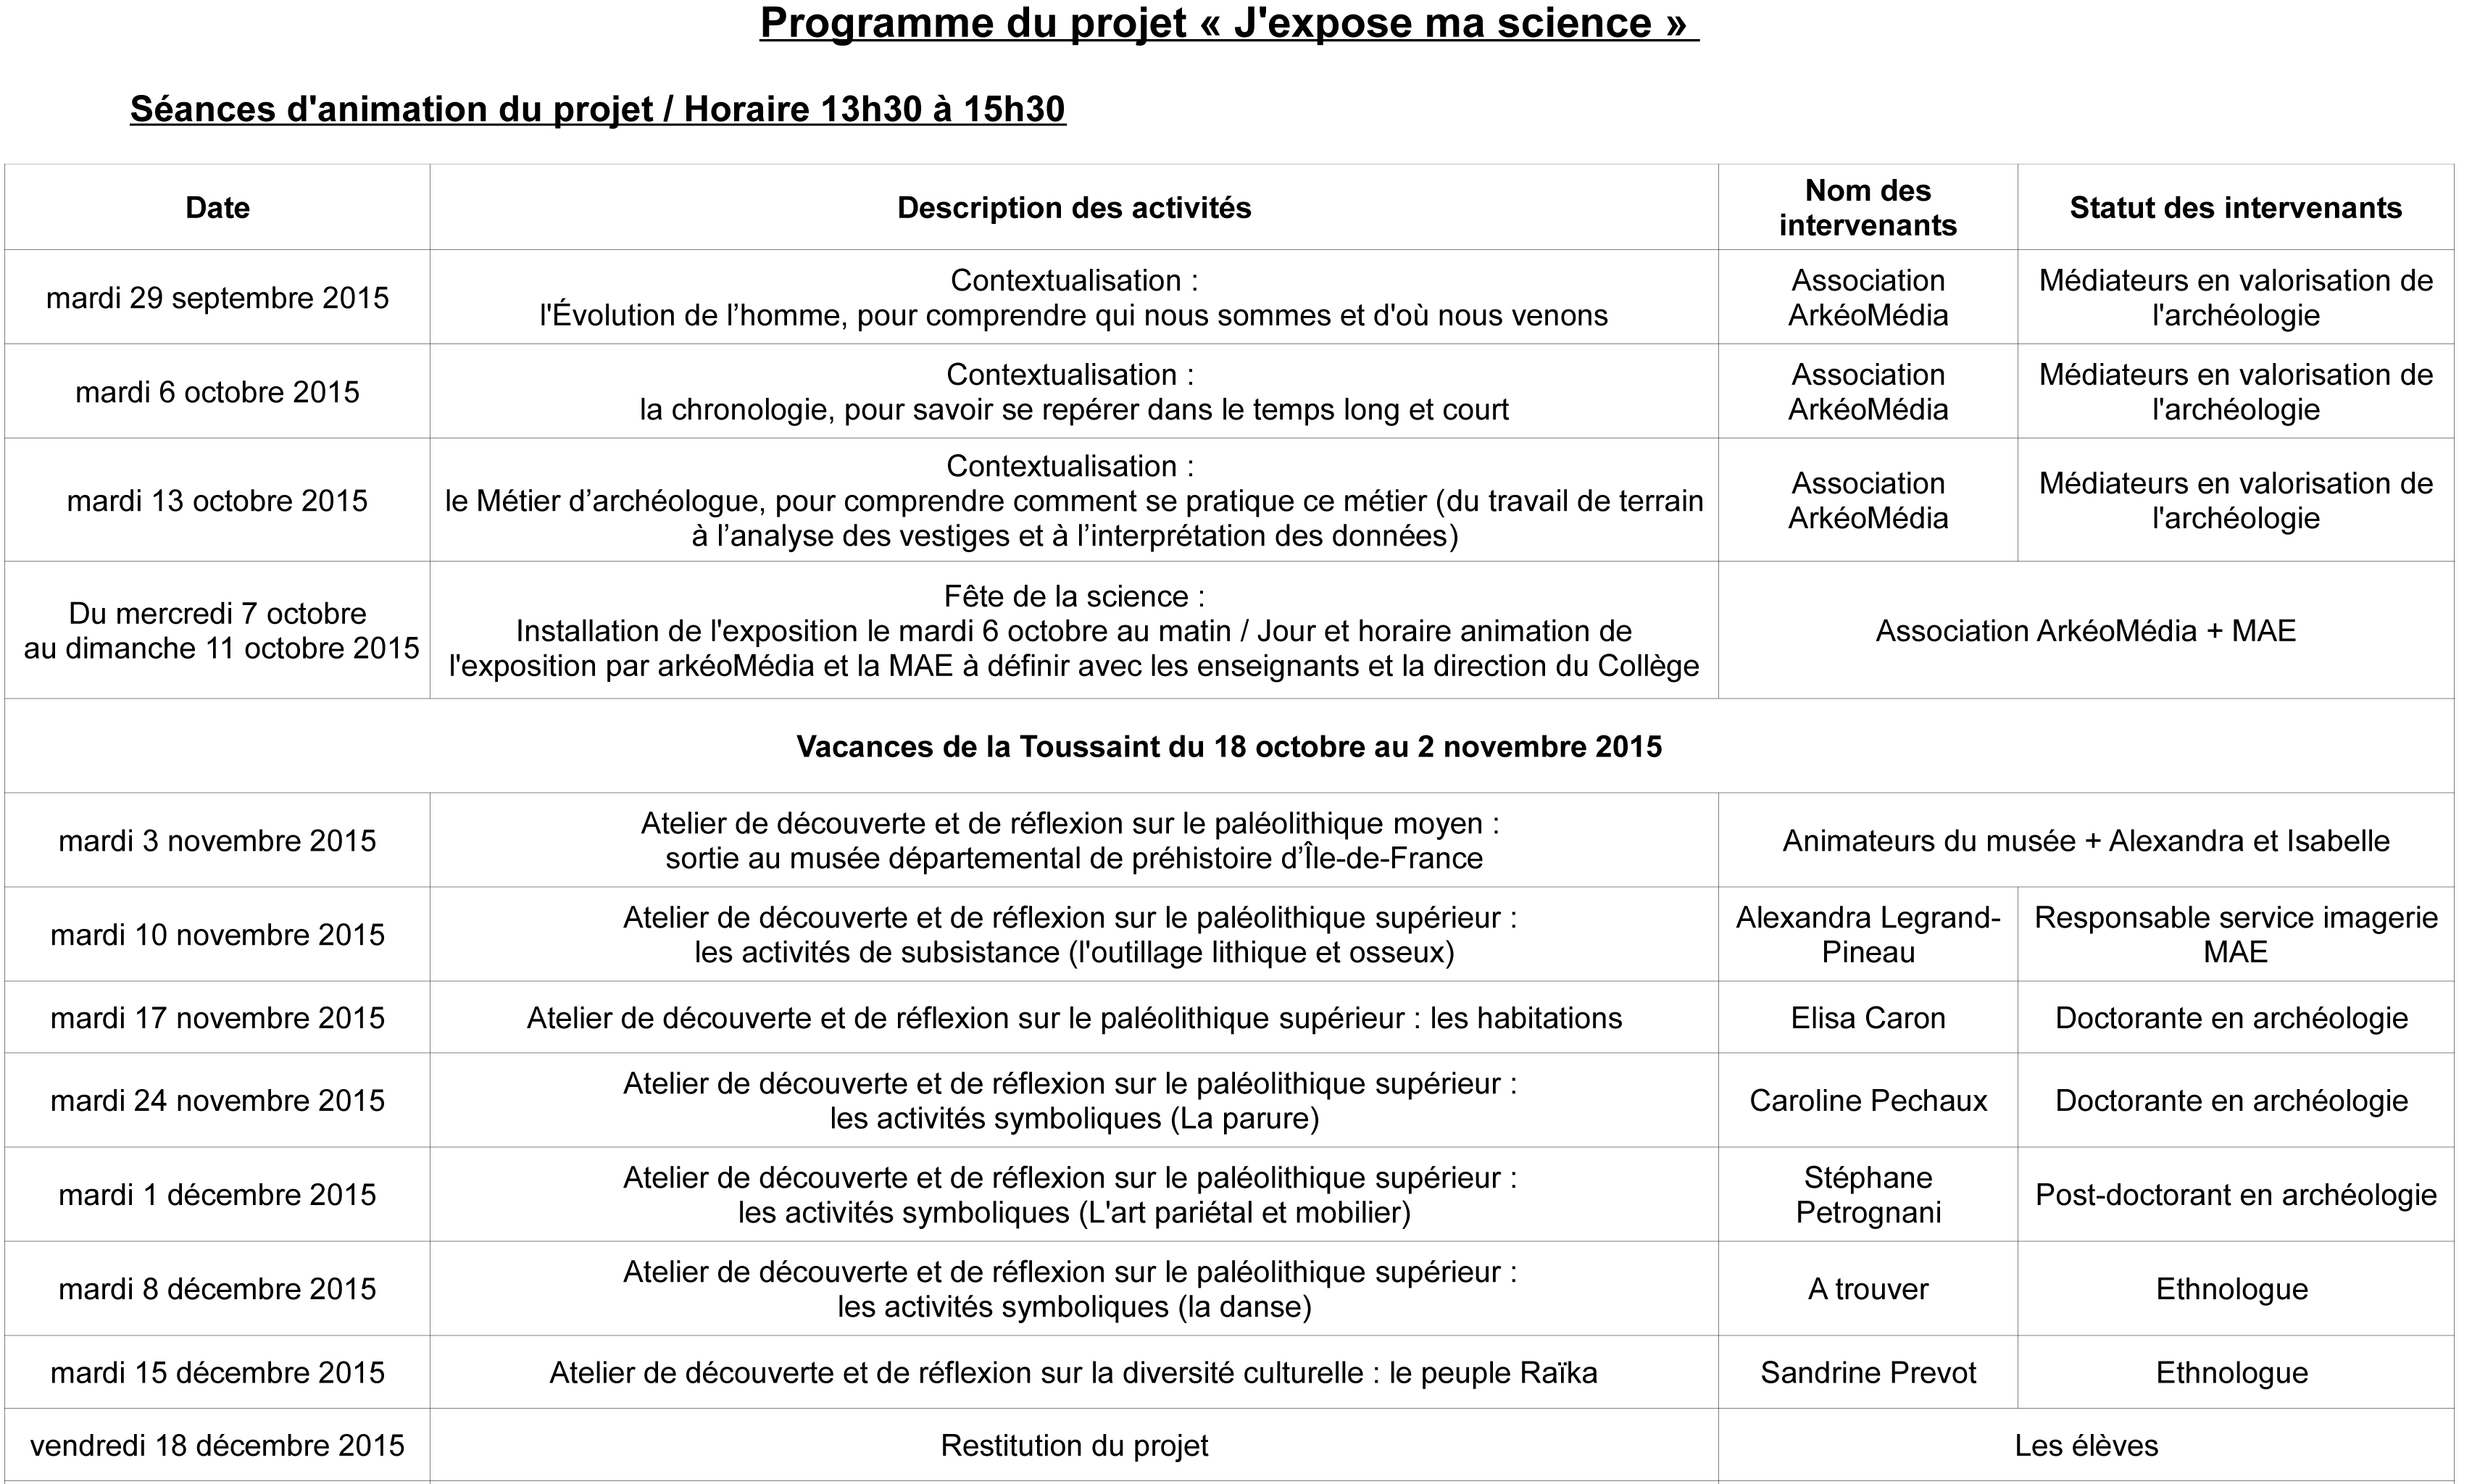 Programme J'expose ma science